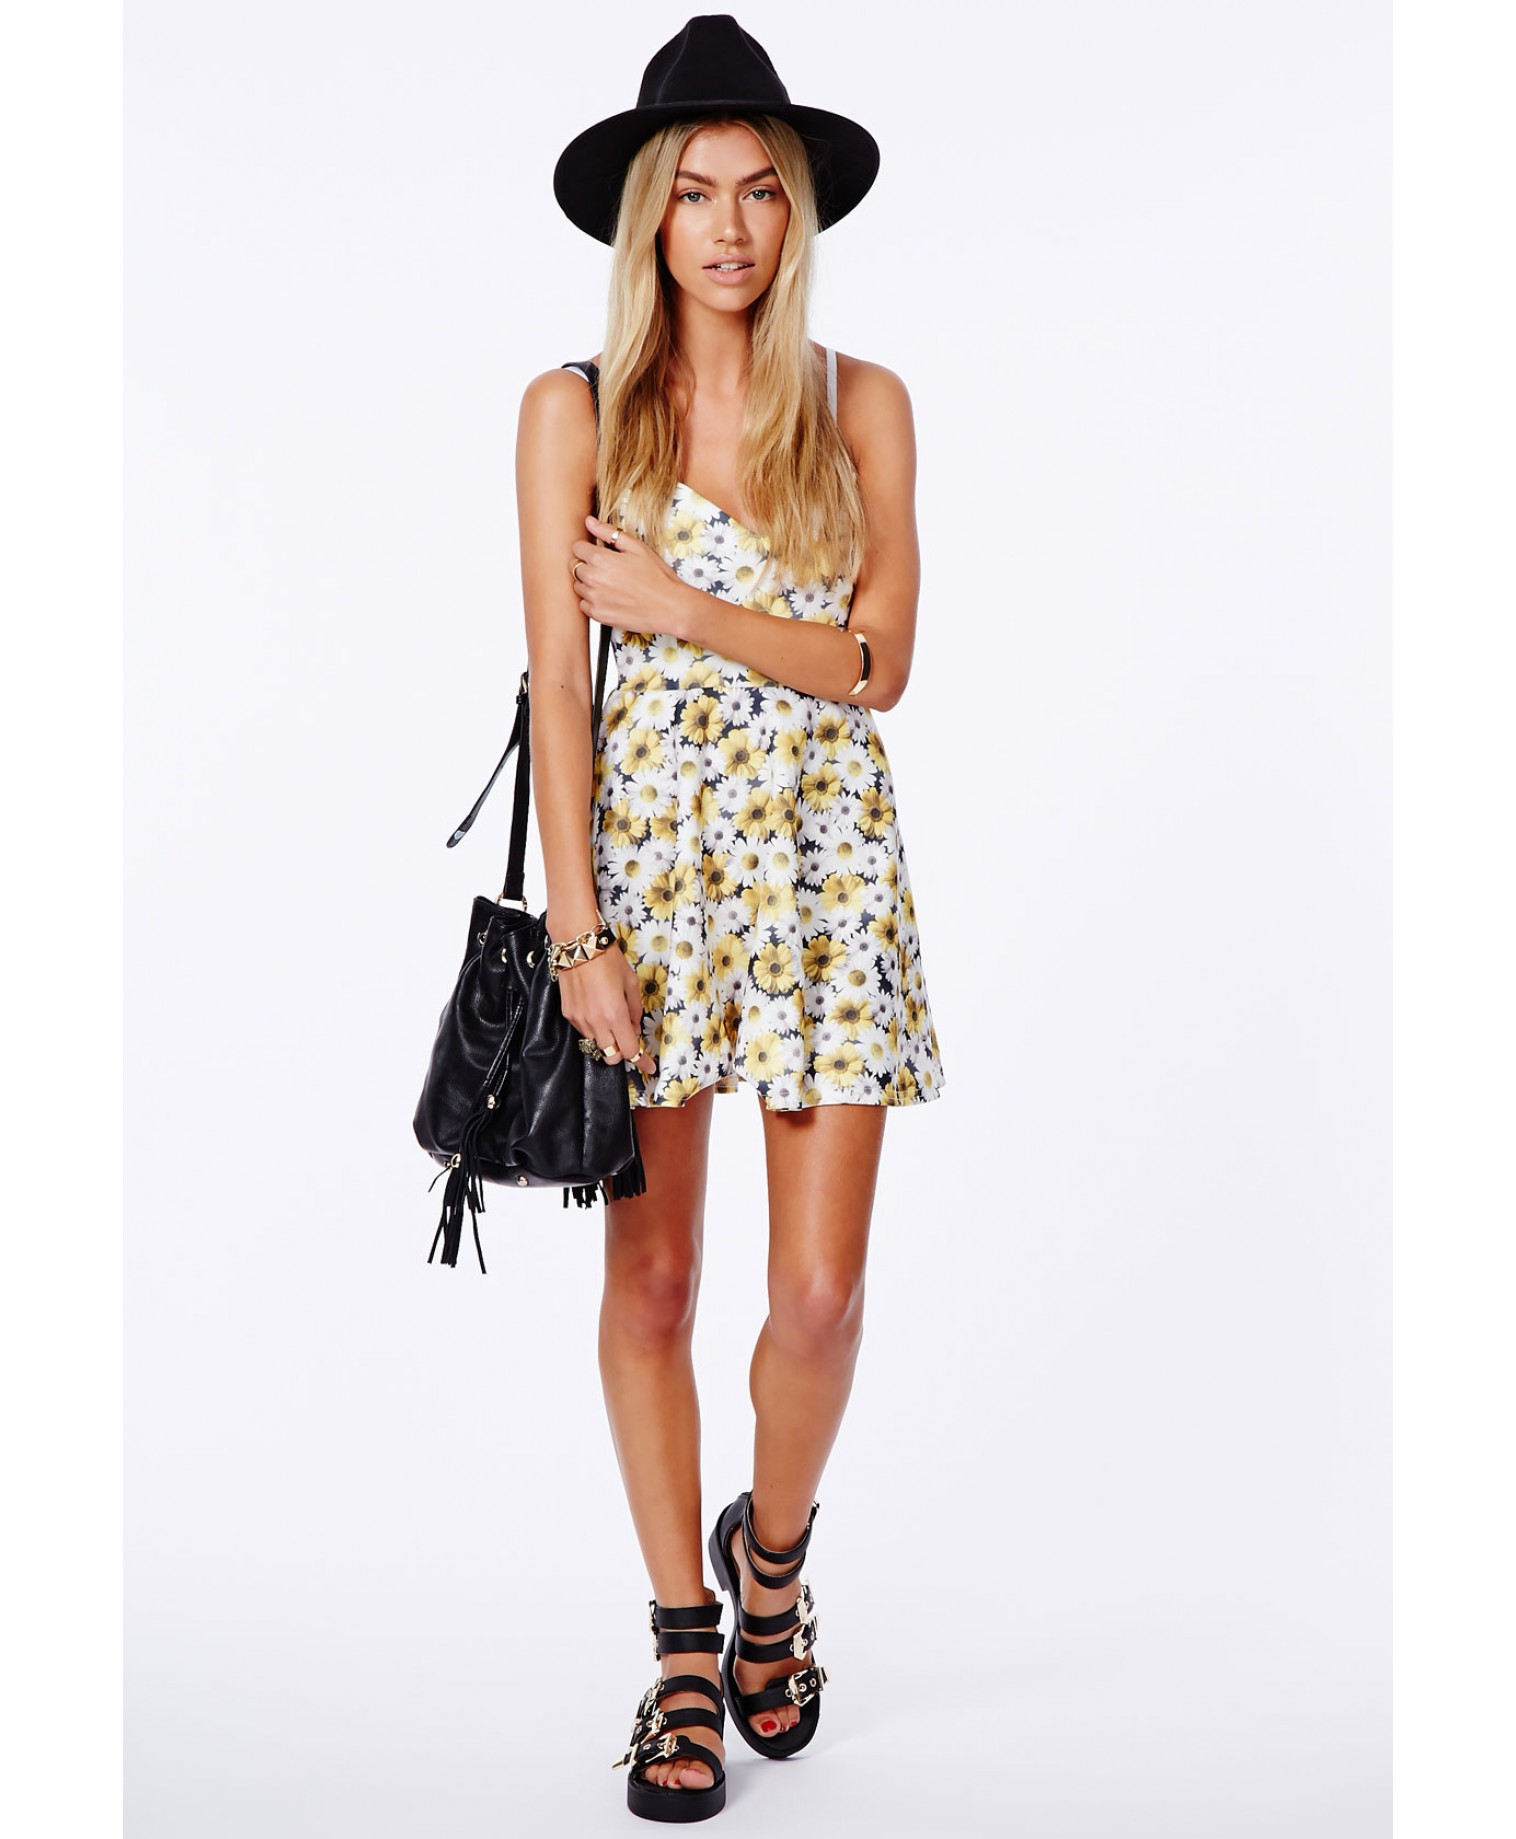 d419152258 Arisa yellow skater dress in daisy print 2